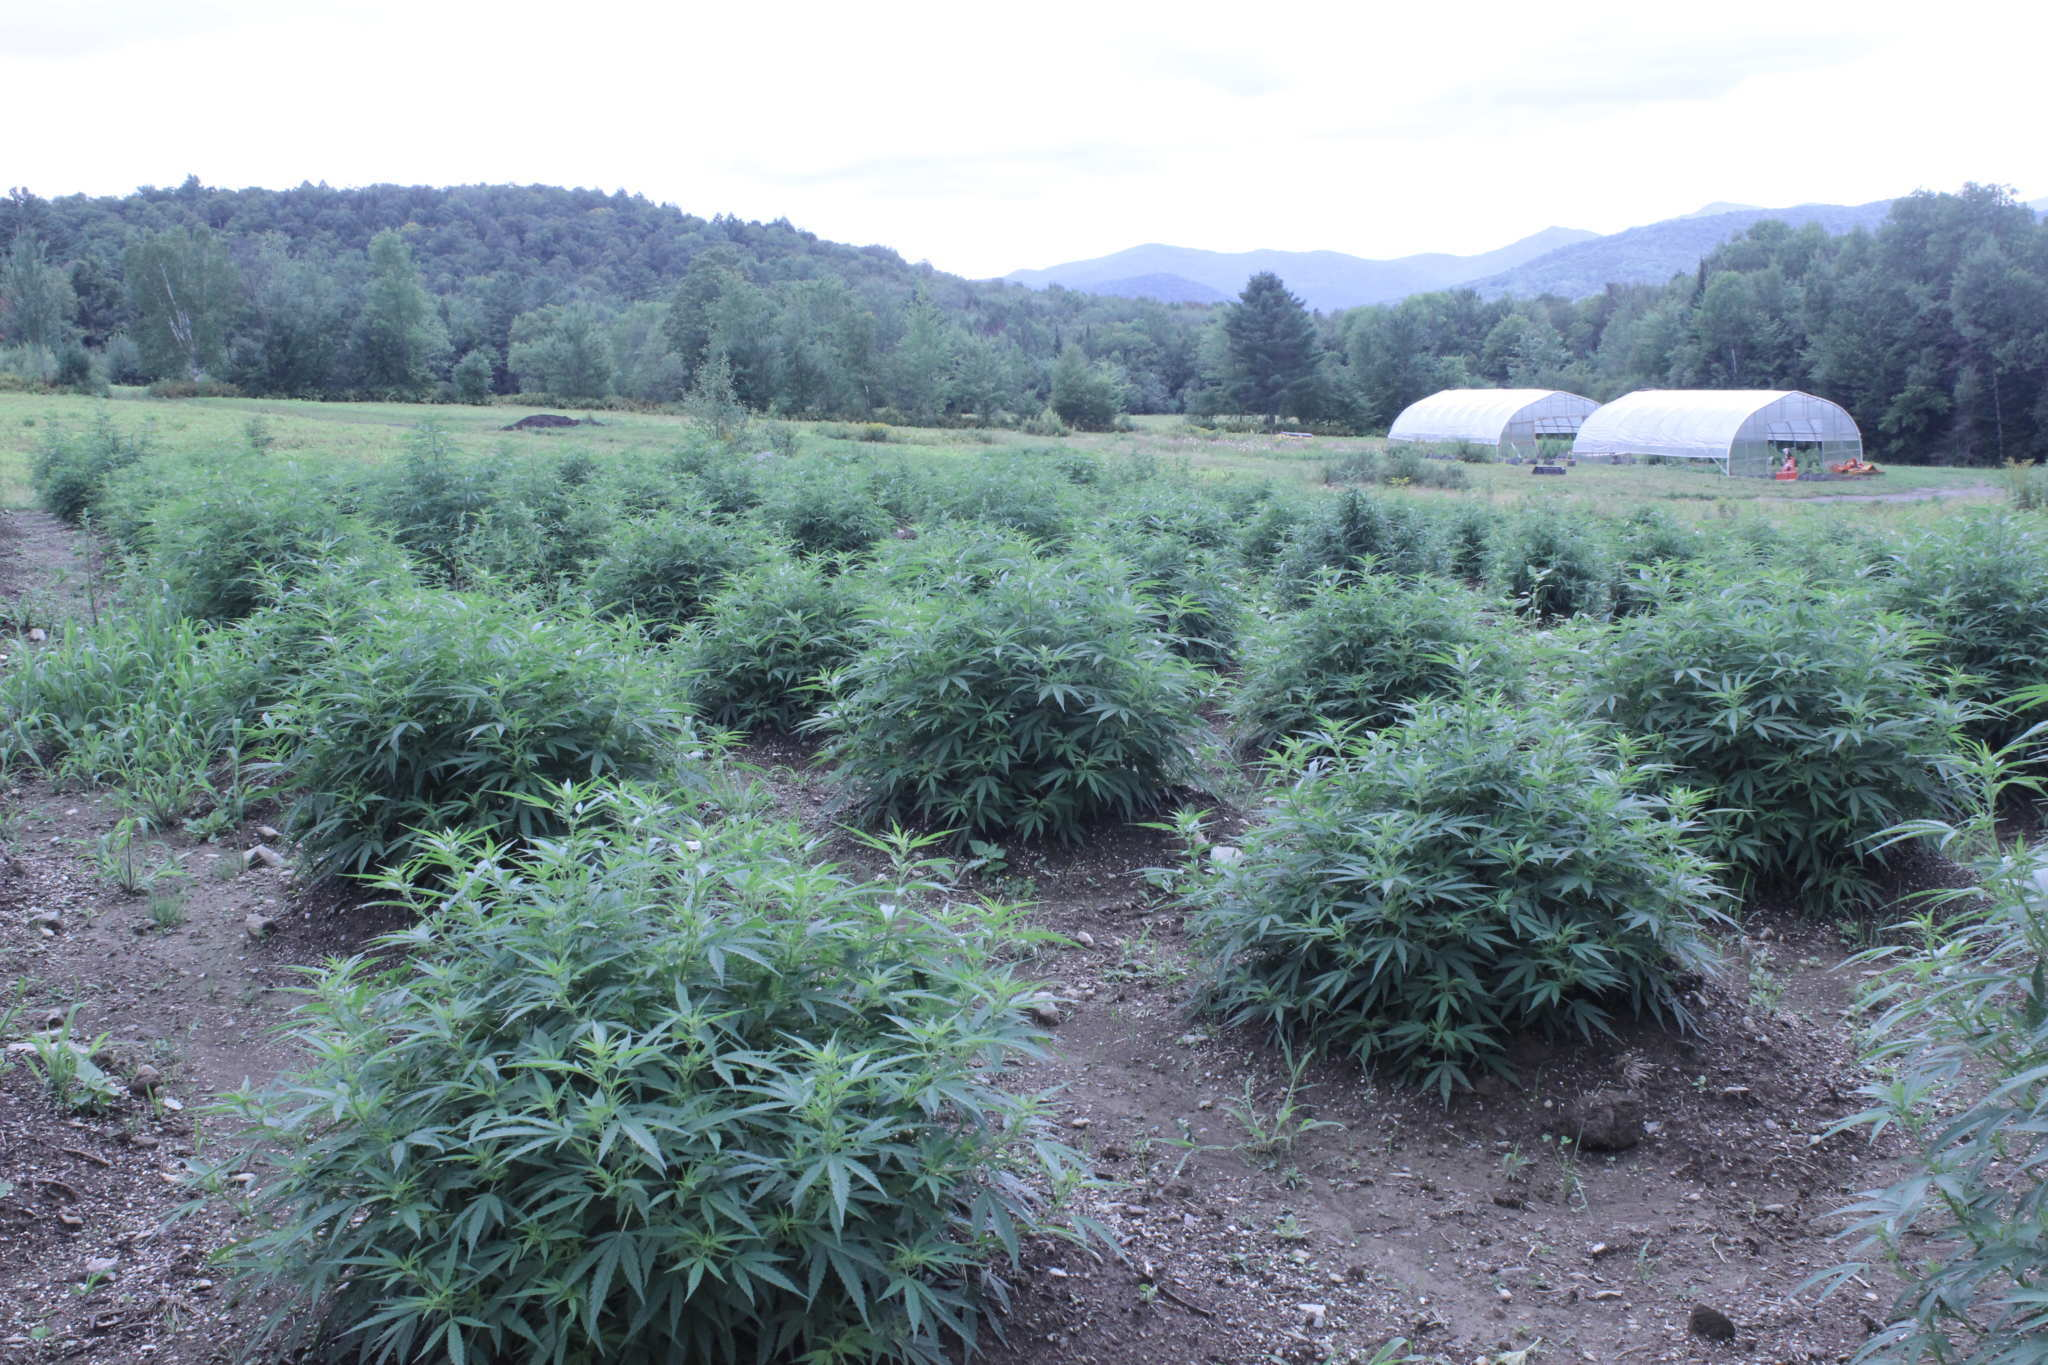 Hemp grows in dense clusters in a field. In the distance are greenhouses, a forest and the mountains. Luce Farm is not just a beautiful Vermont hemp farm, but also an example of hemp's power to revive American agriculture.